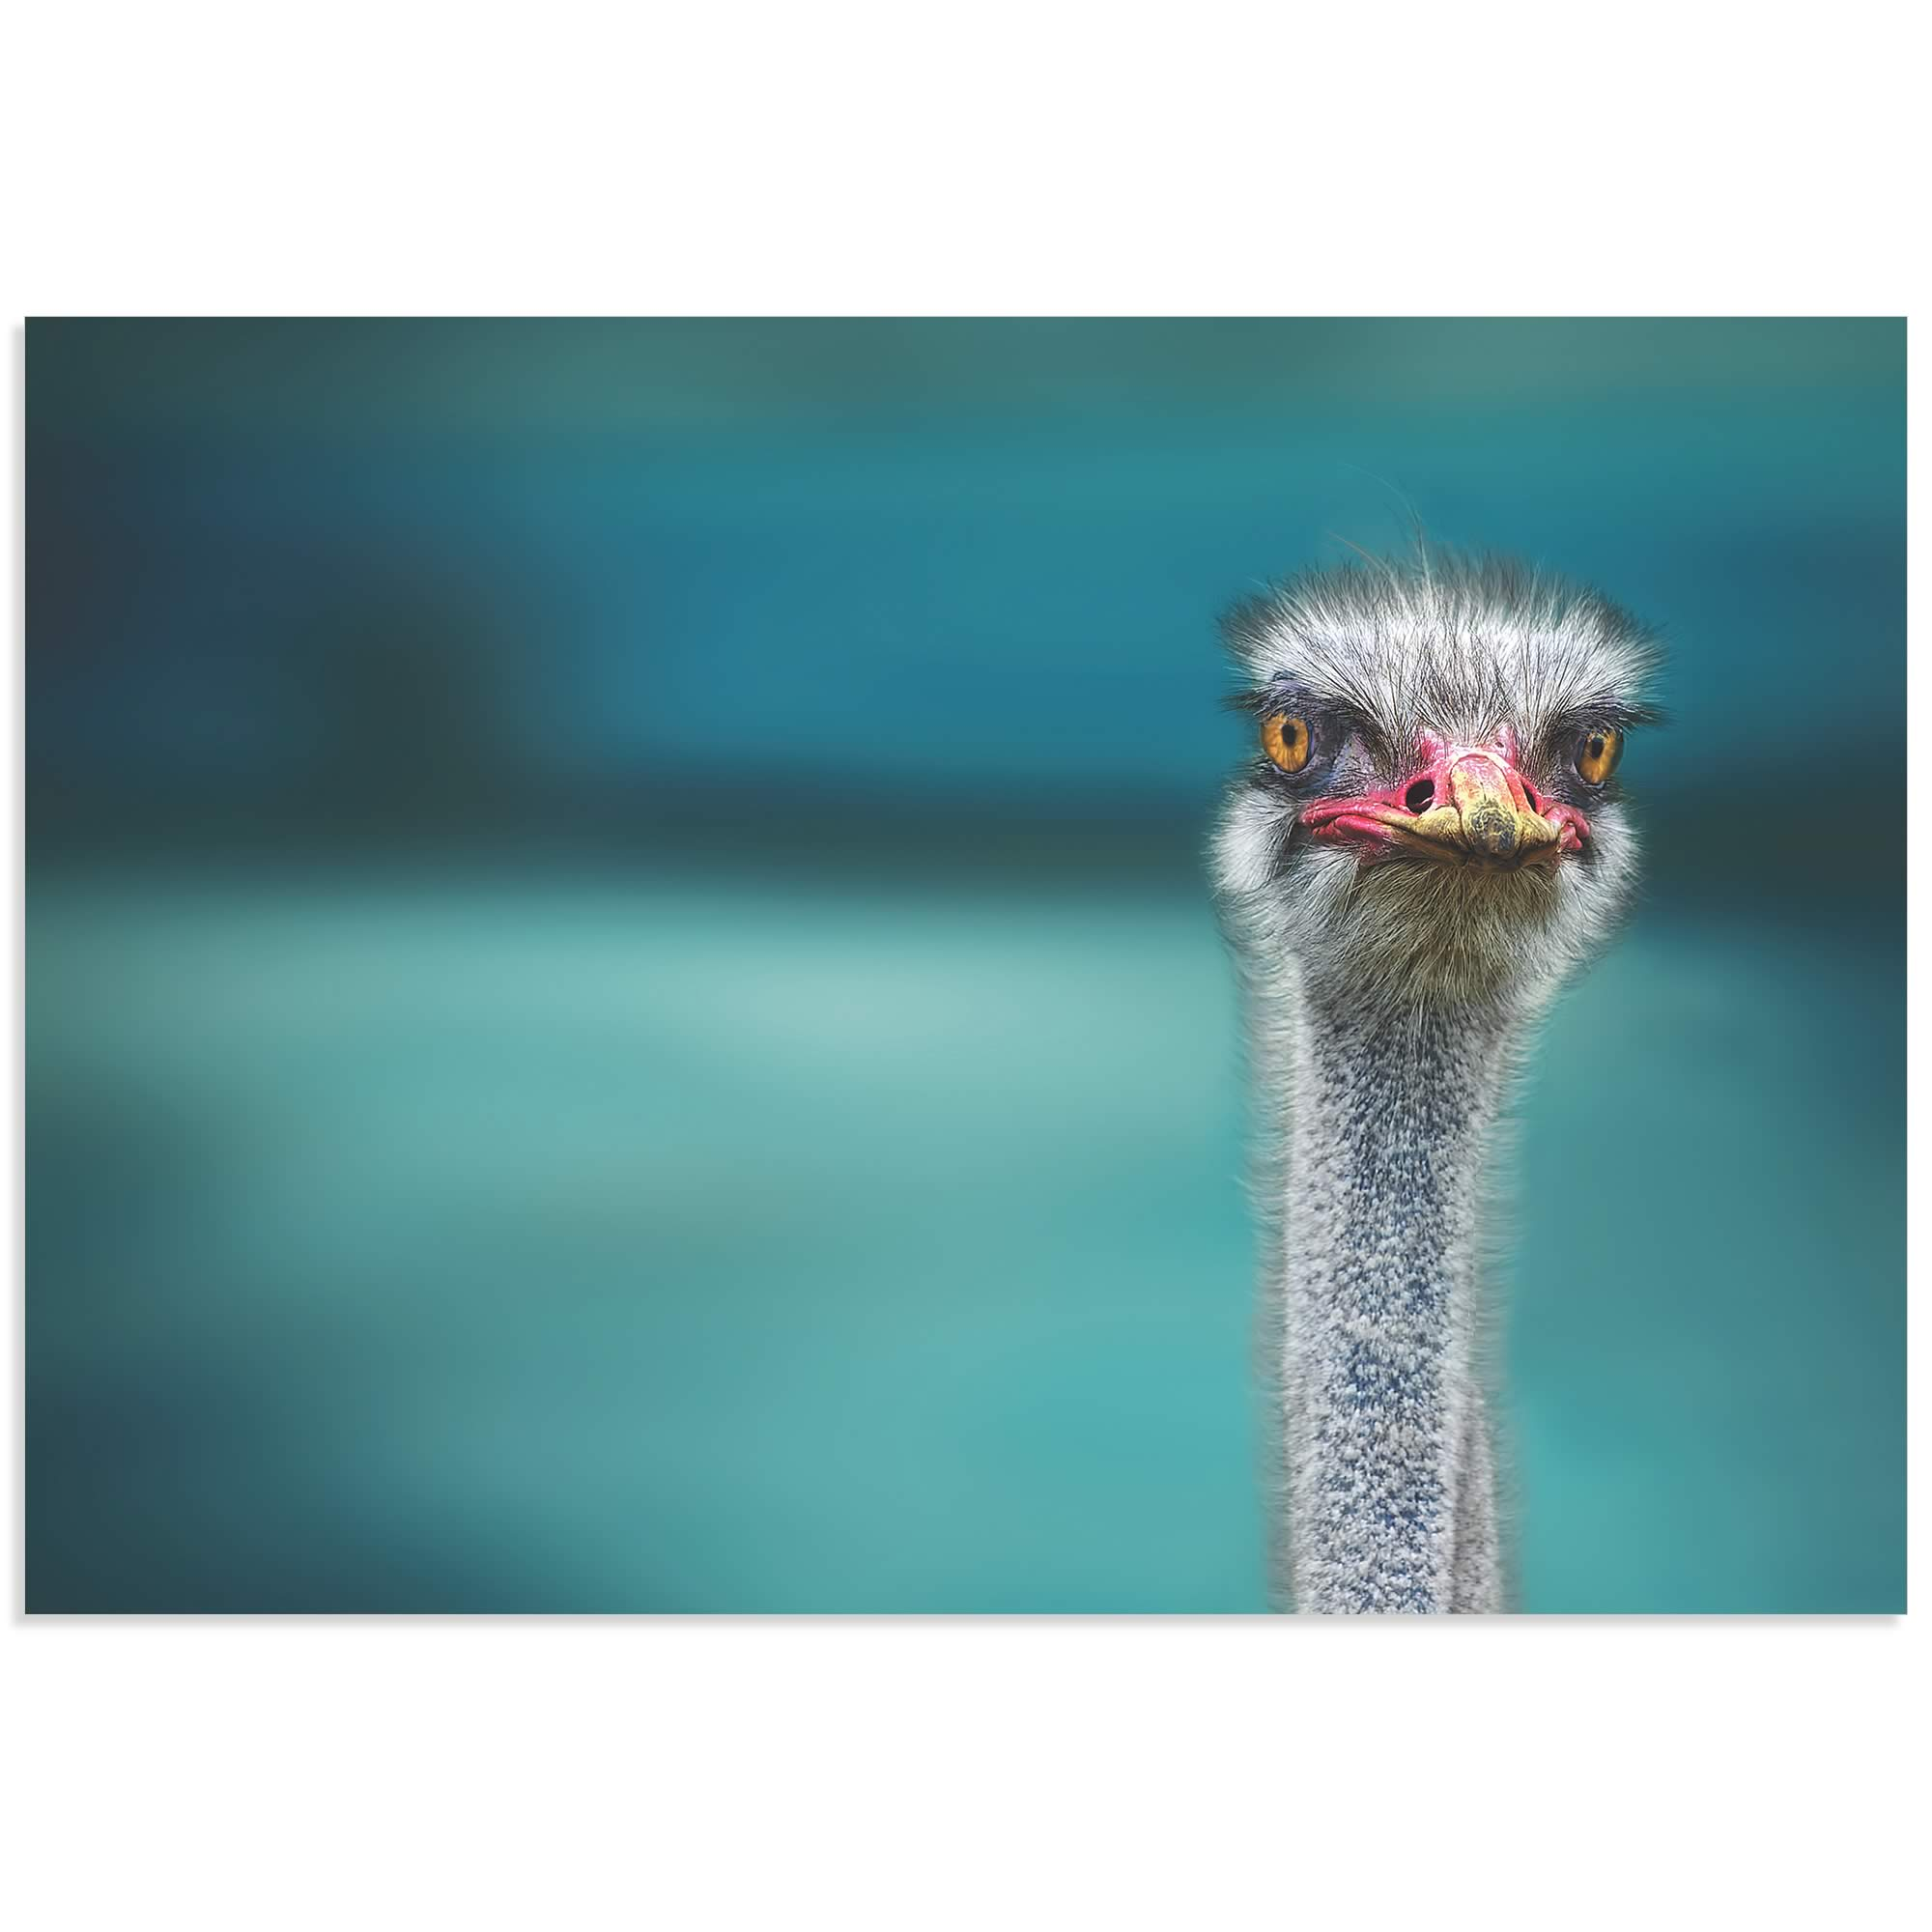 Ostrich by Piet Flour - Ostrich Wall Art on Metal or Acrylic